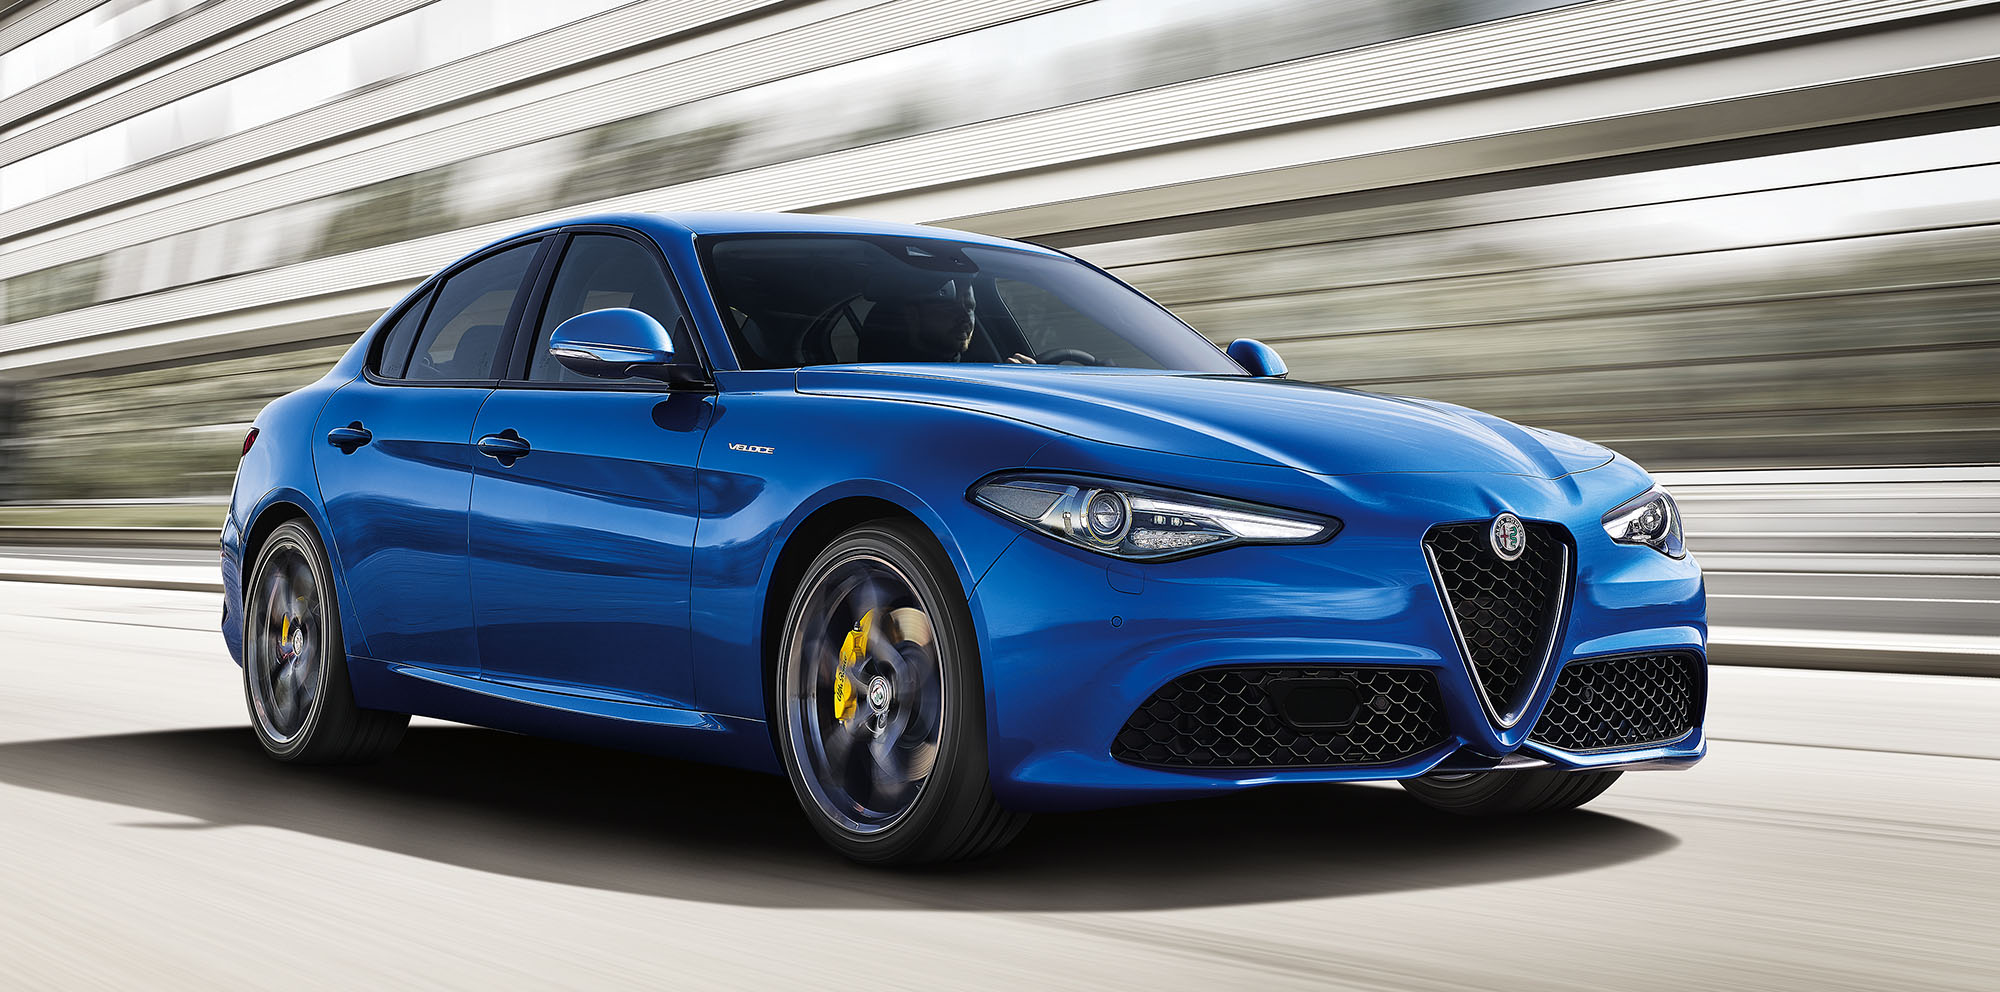 2017 alfa romeo giulia veloce faster awd variant announced photos 1 of 4. Black Bedroom Furniture Sets. Home Design Ideas